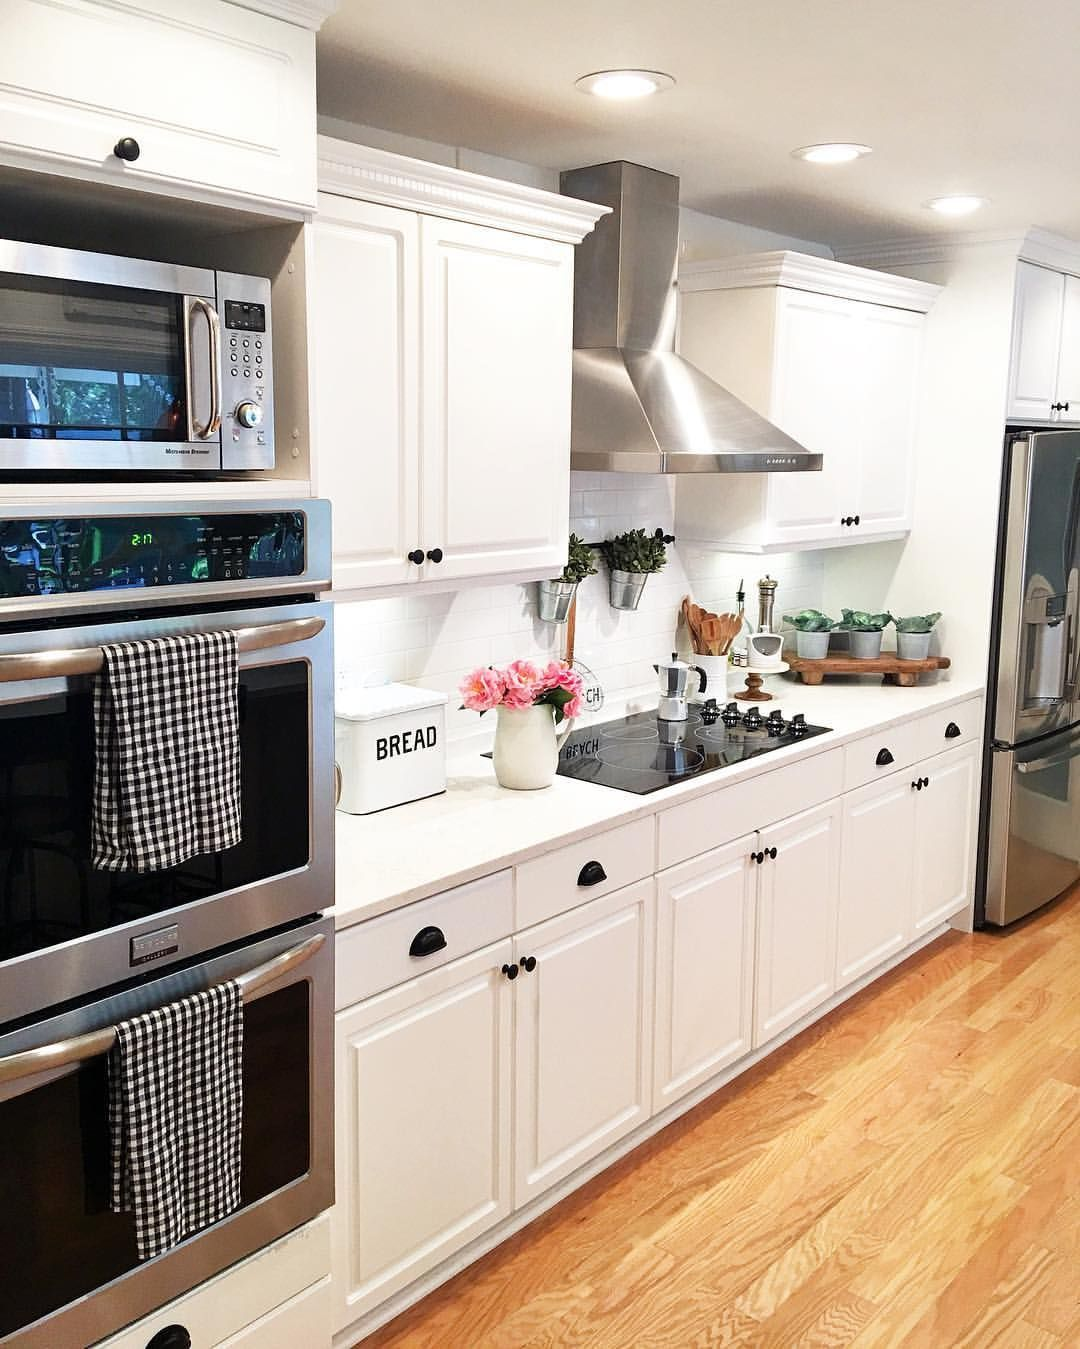 10 great tips for kitchen remodeling ideas in 2019 kitchen remodal rh pinterest com